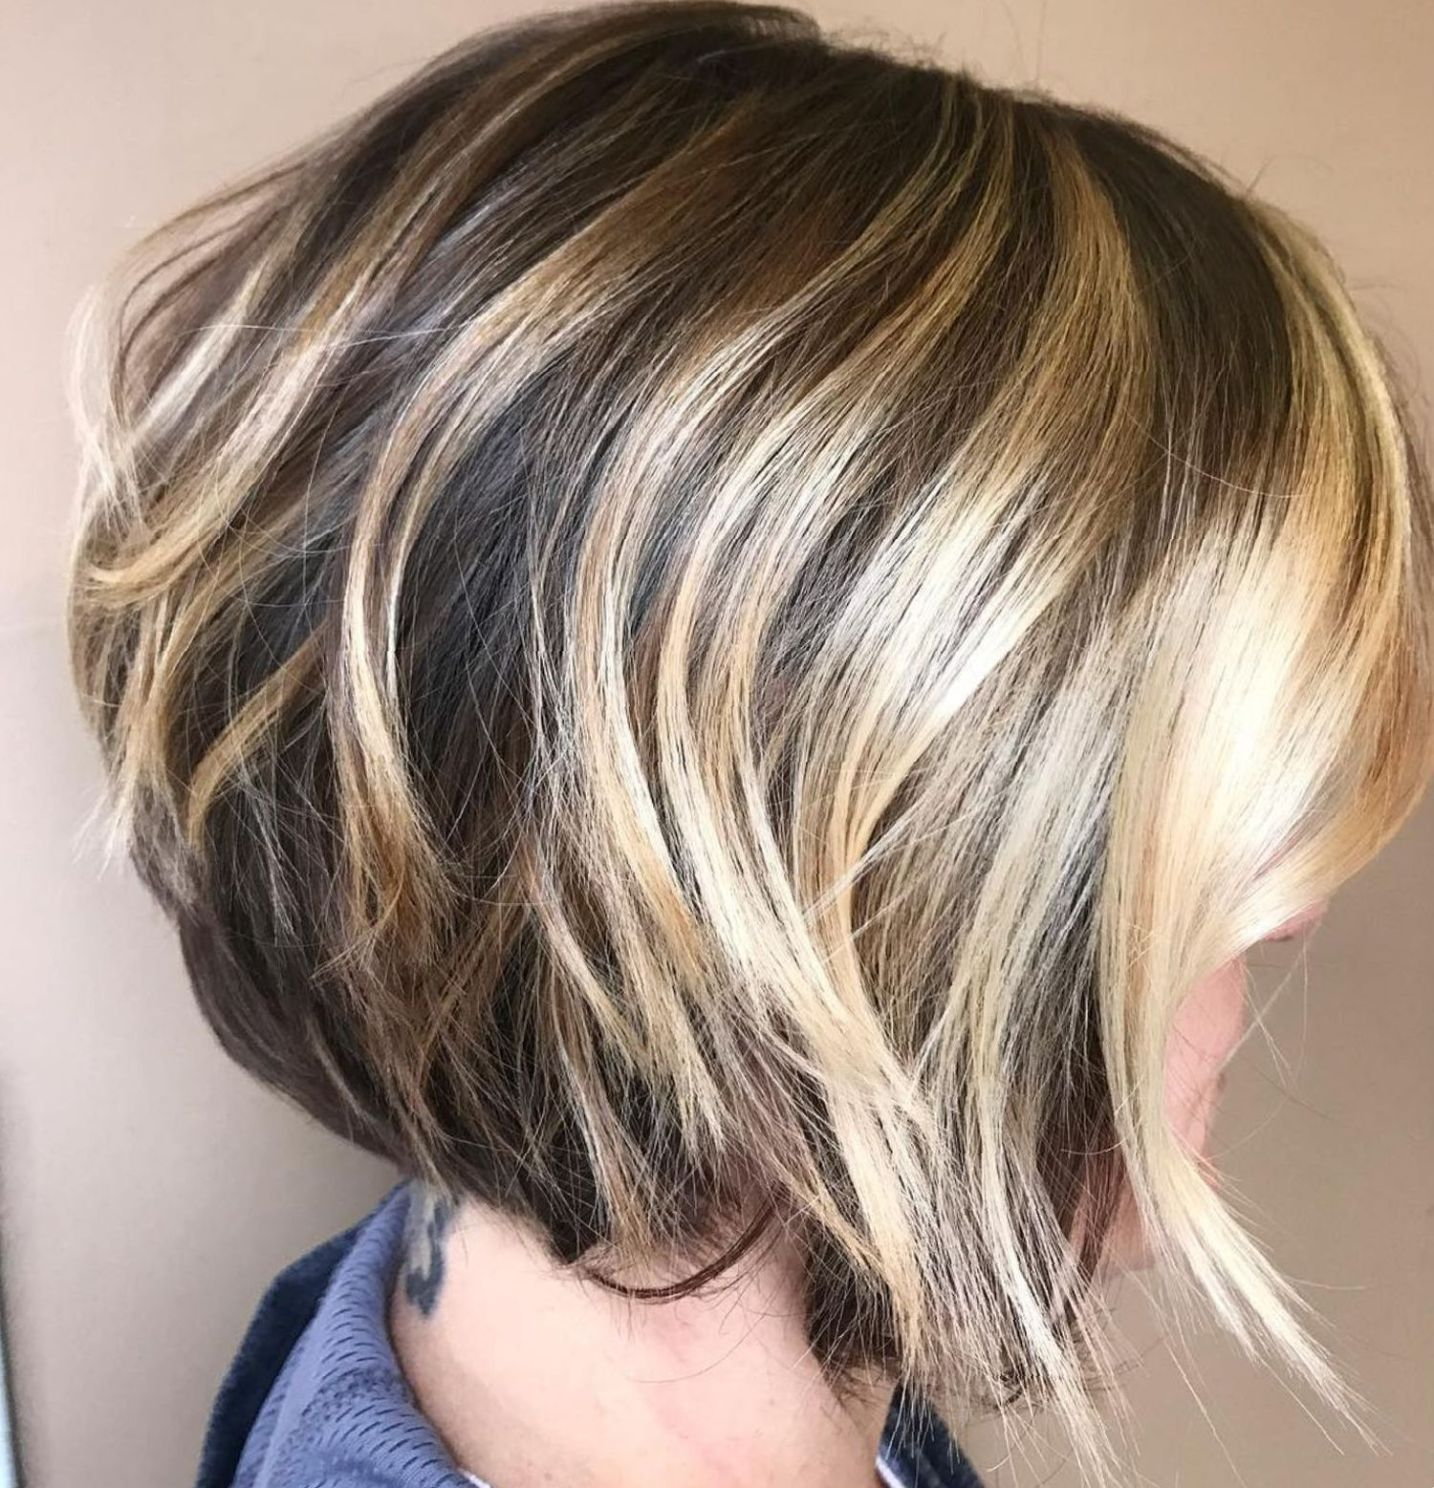 Step cutting hairstyle boy  most beneficial haircuts for thick hair of any length in